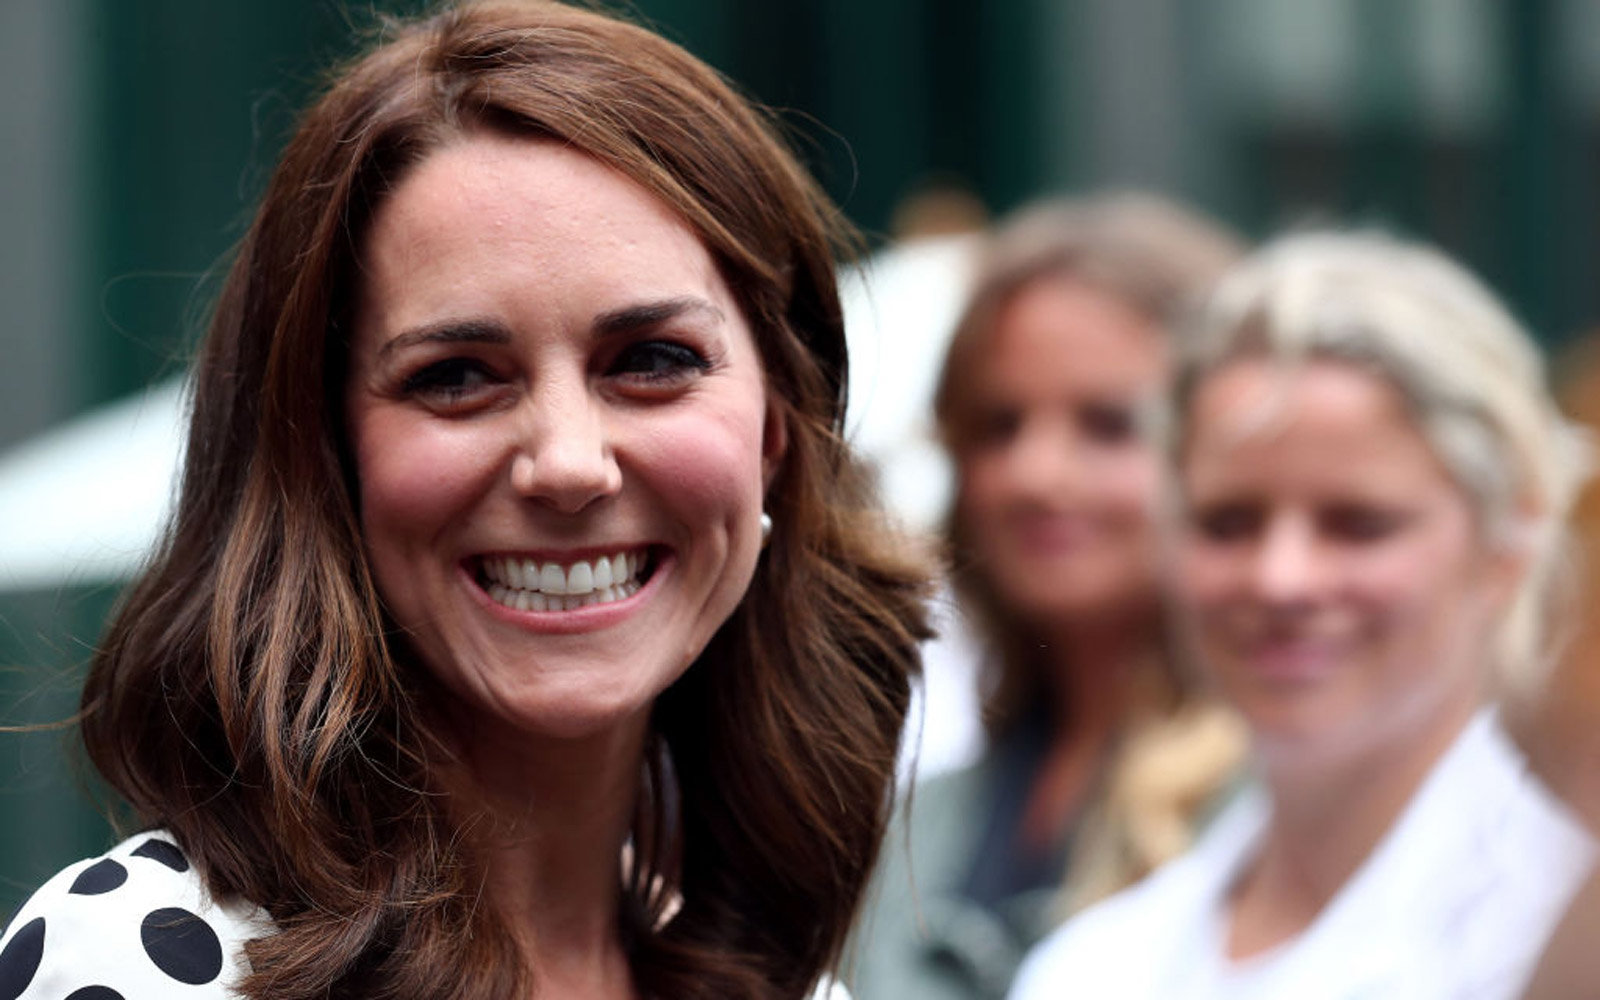 Britain's Catherine, Duchess of Cambridge, smiles as she meets former players, servicemen and servicewomen as she visits The All England Lawn Tennis Club in Wimbledon, south-west London, on July 3, 2017 on the first day of the 2017 Wimbledon Championships